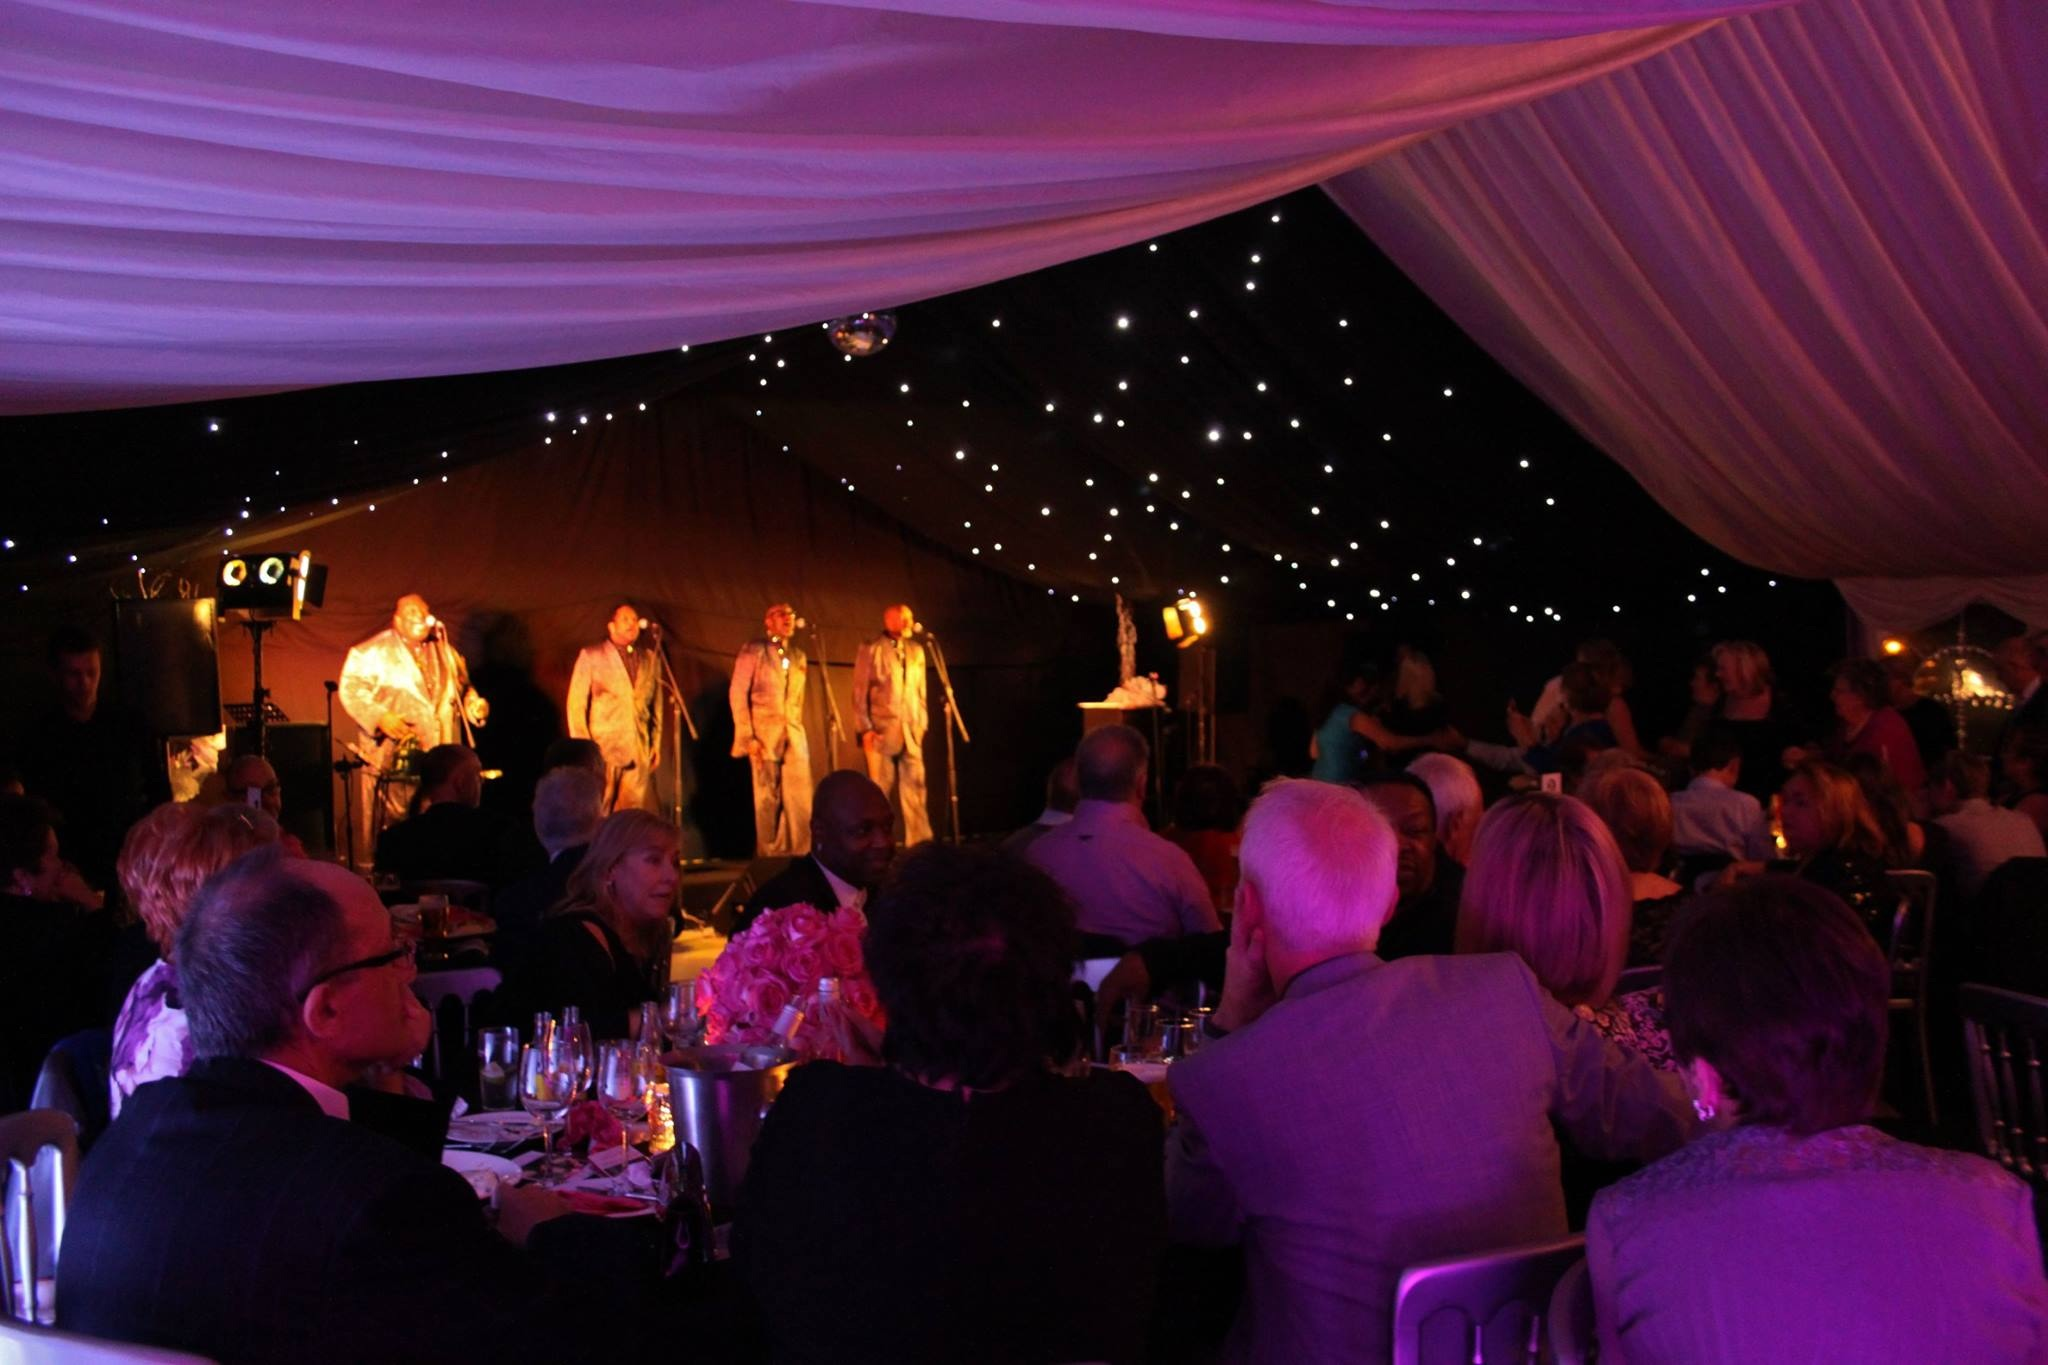 Four tops perform at marquee venue at Liverpool cricket club